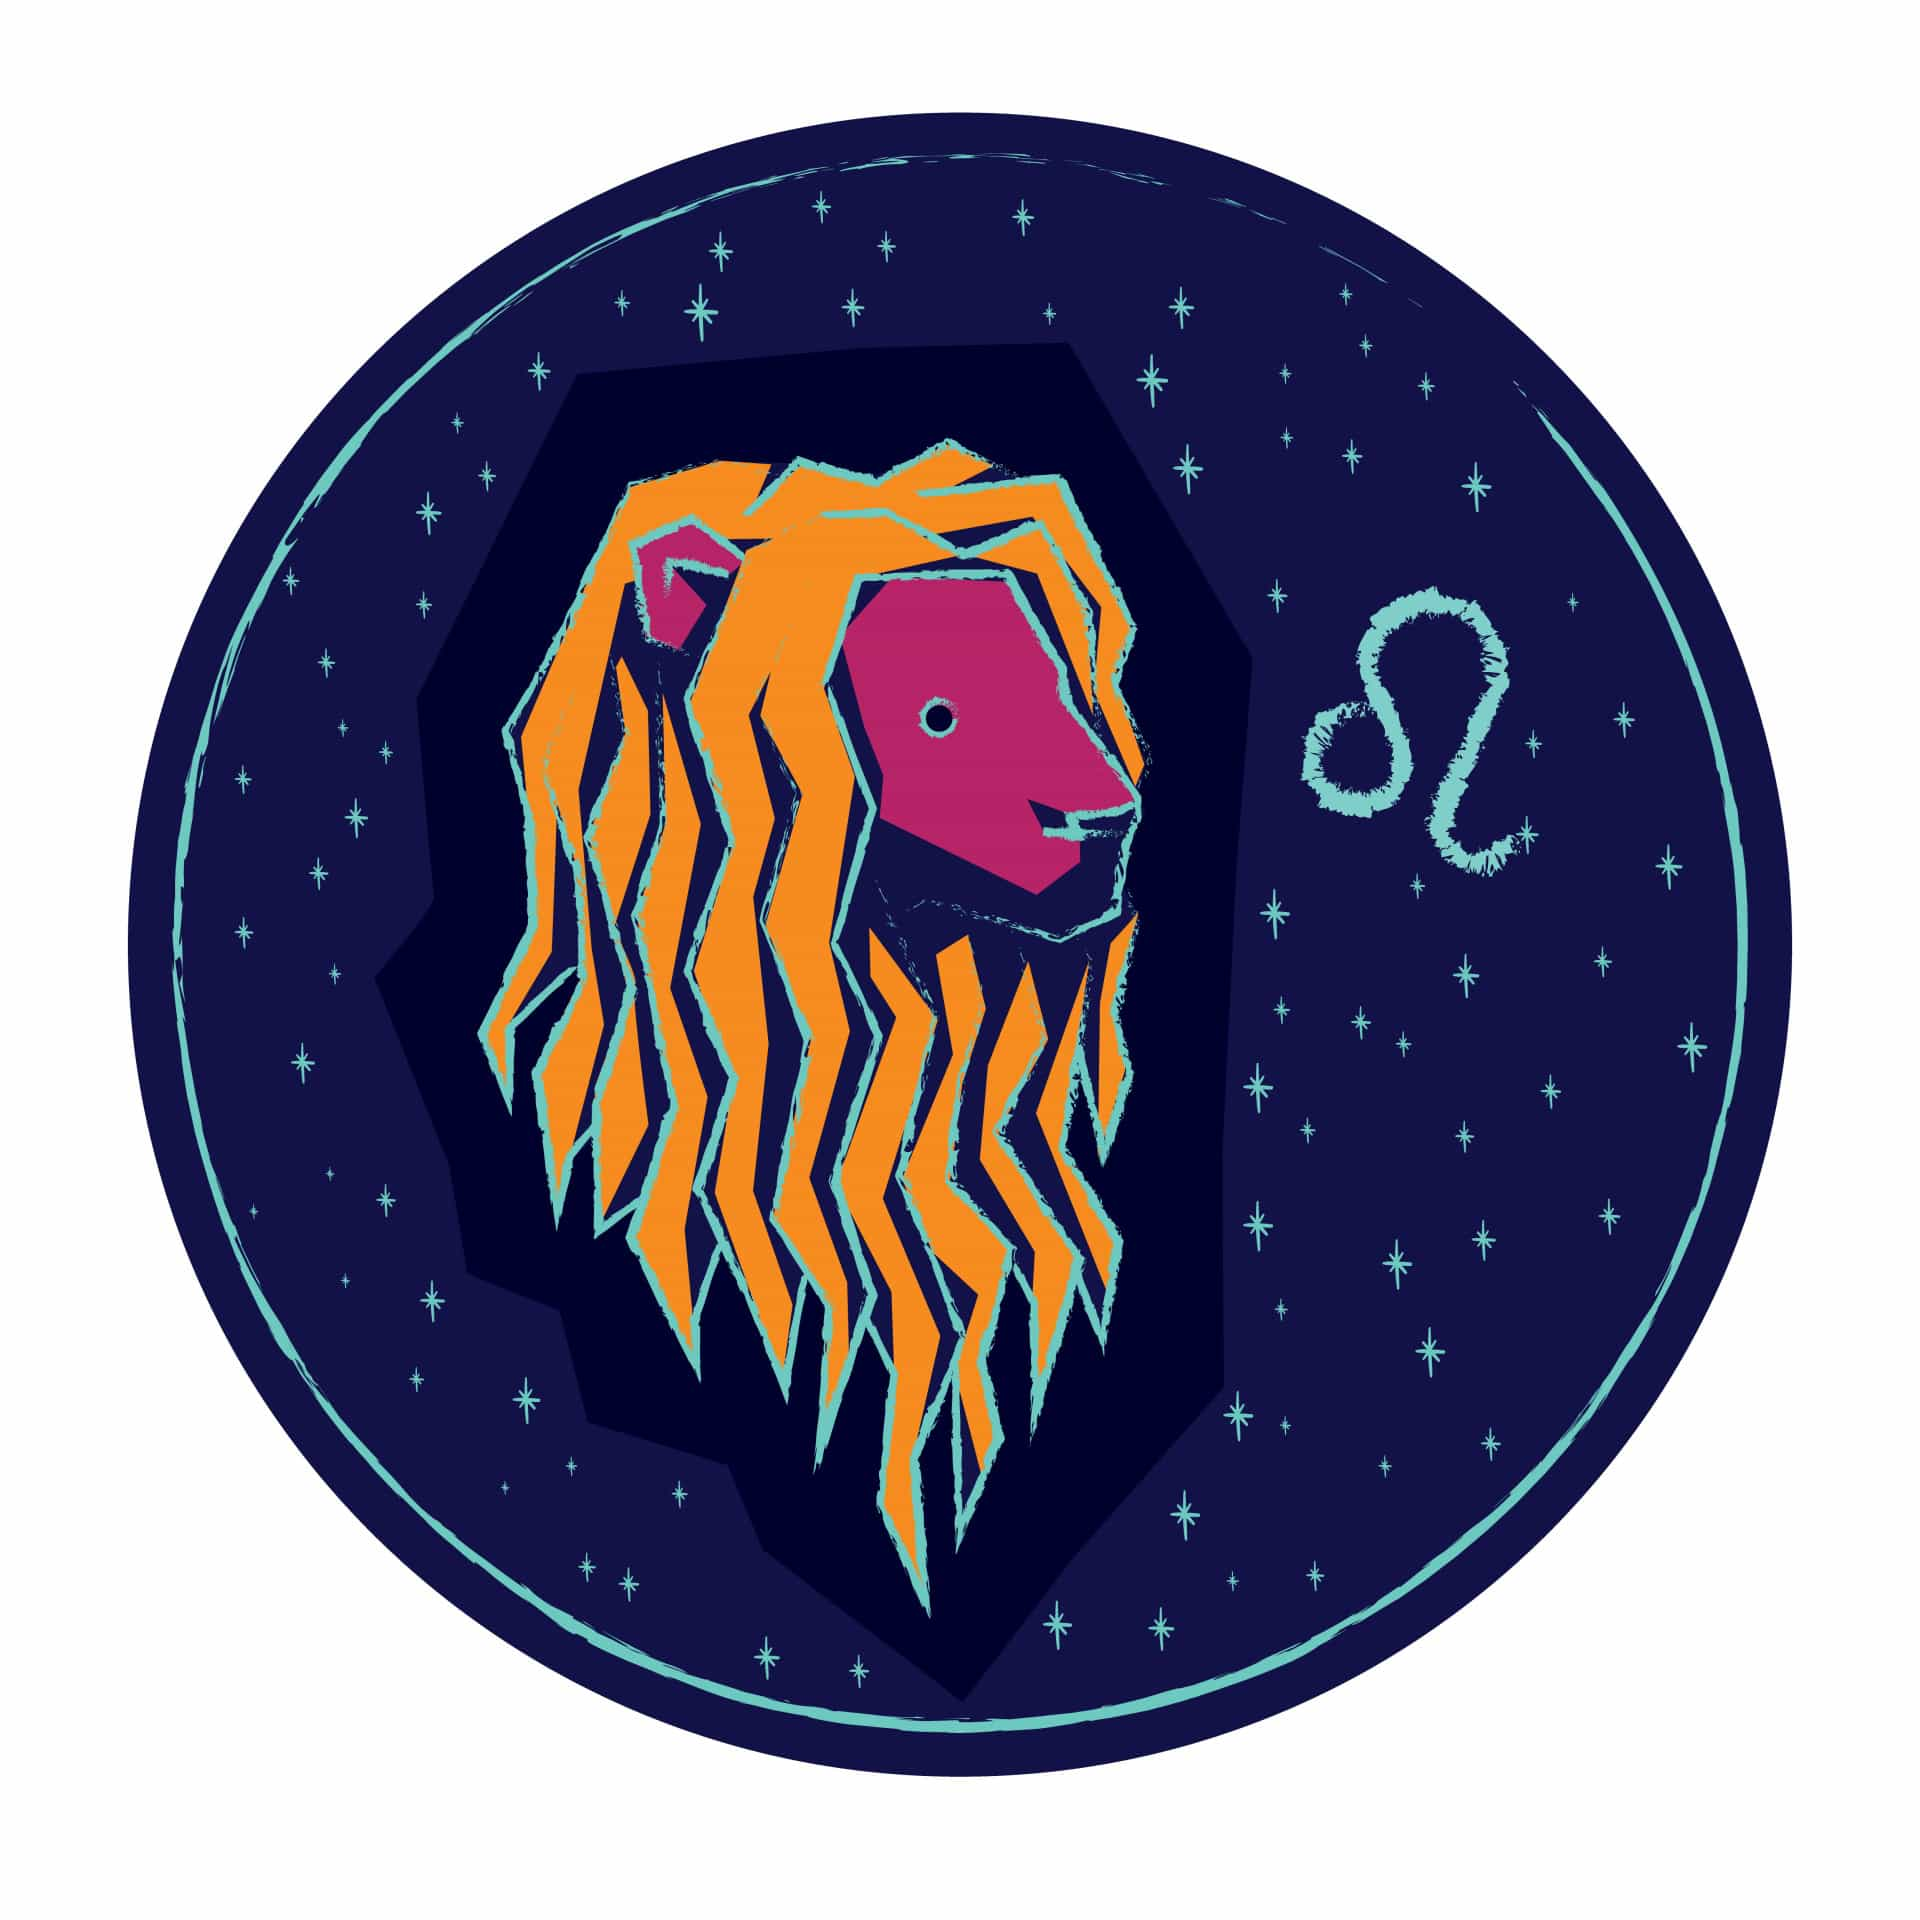 The best way to relax and relieve stress according to your star sign